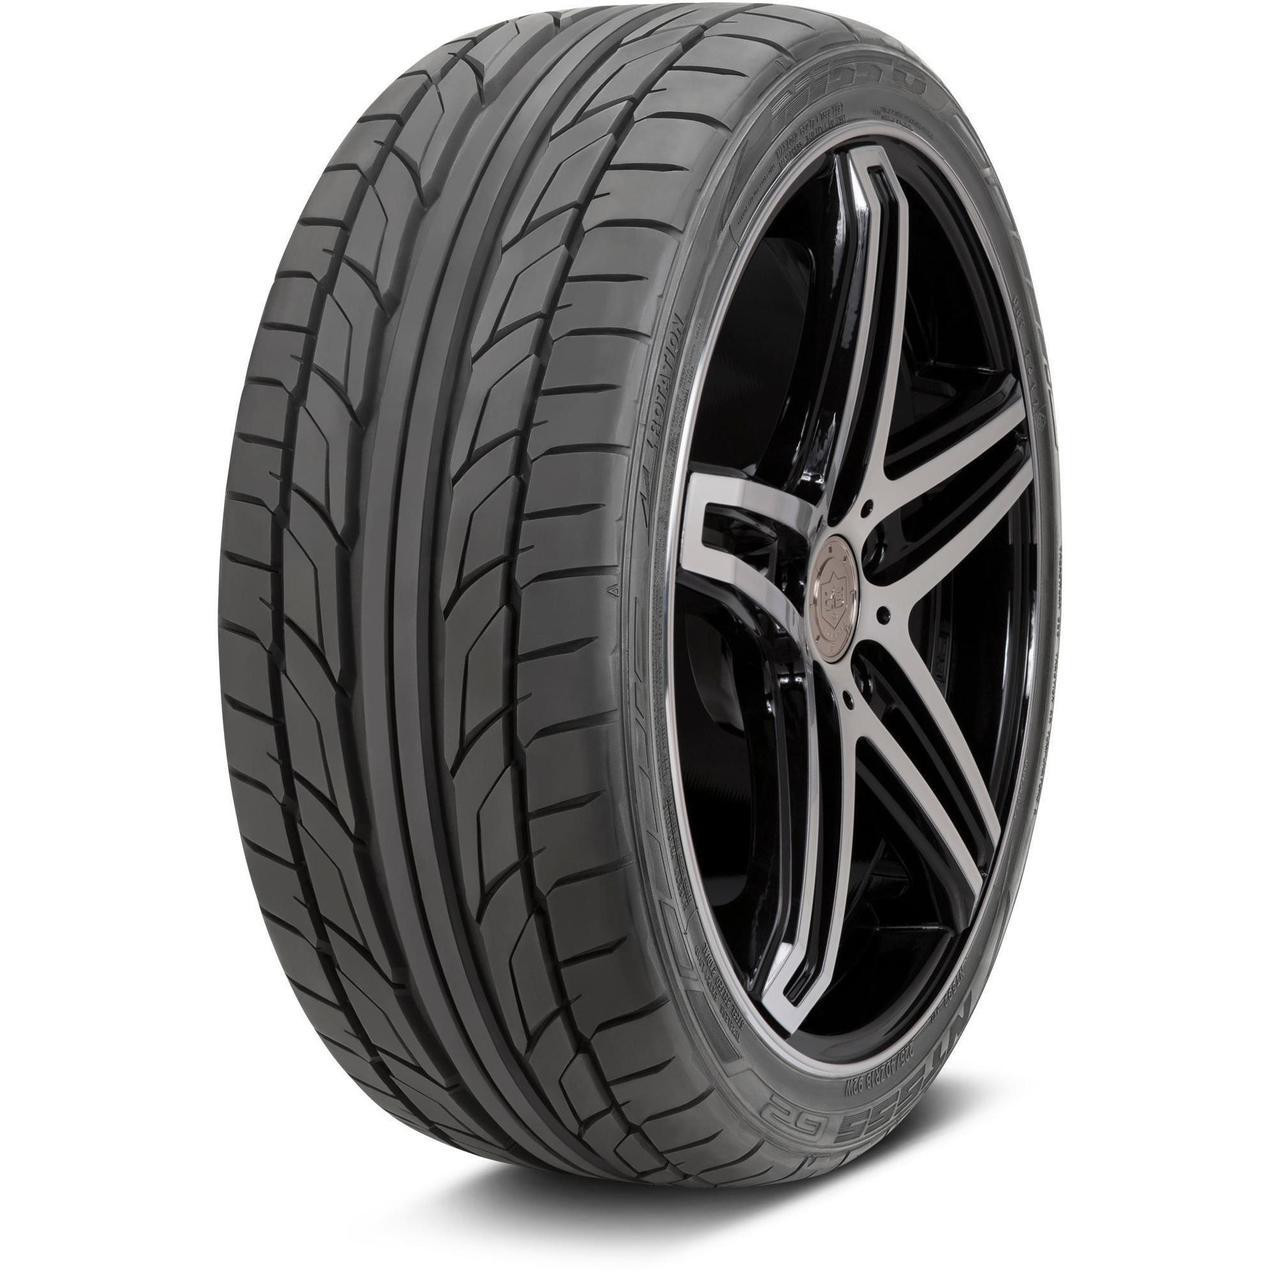 Nitto NT555 G2 Performance Radial Tire 255//40ZR17 98W